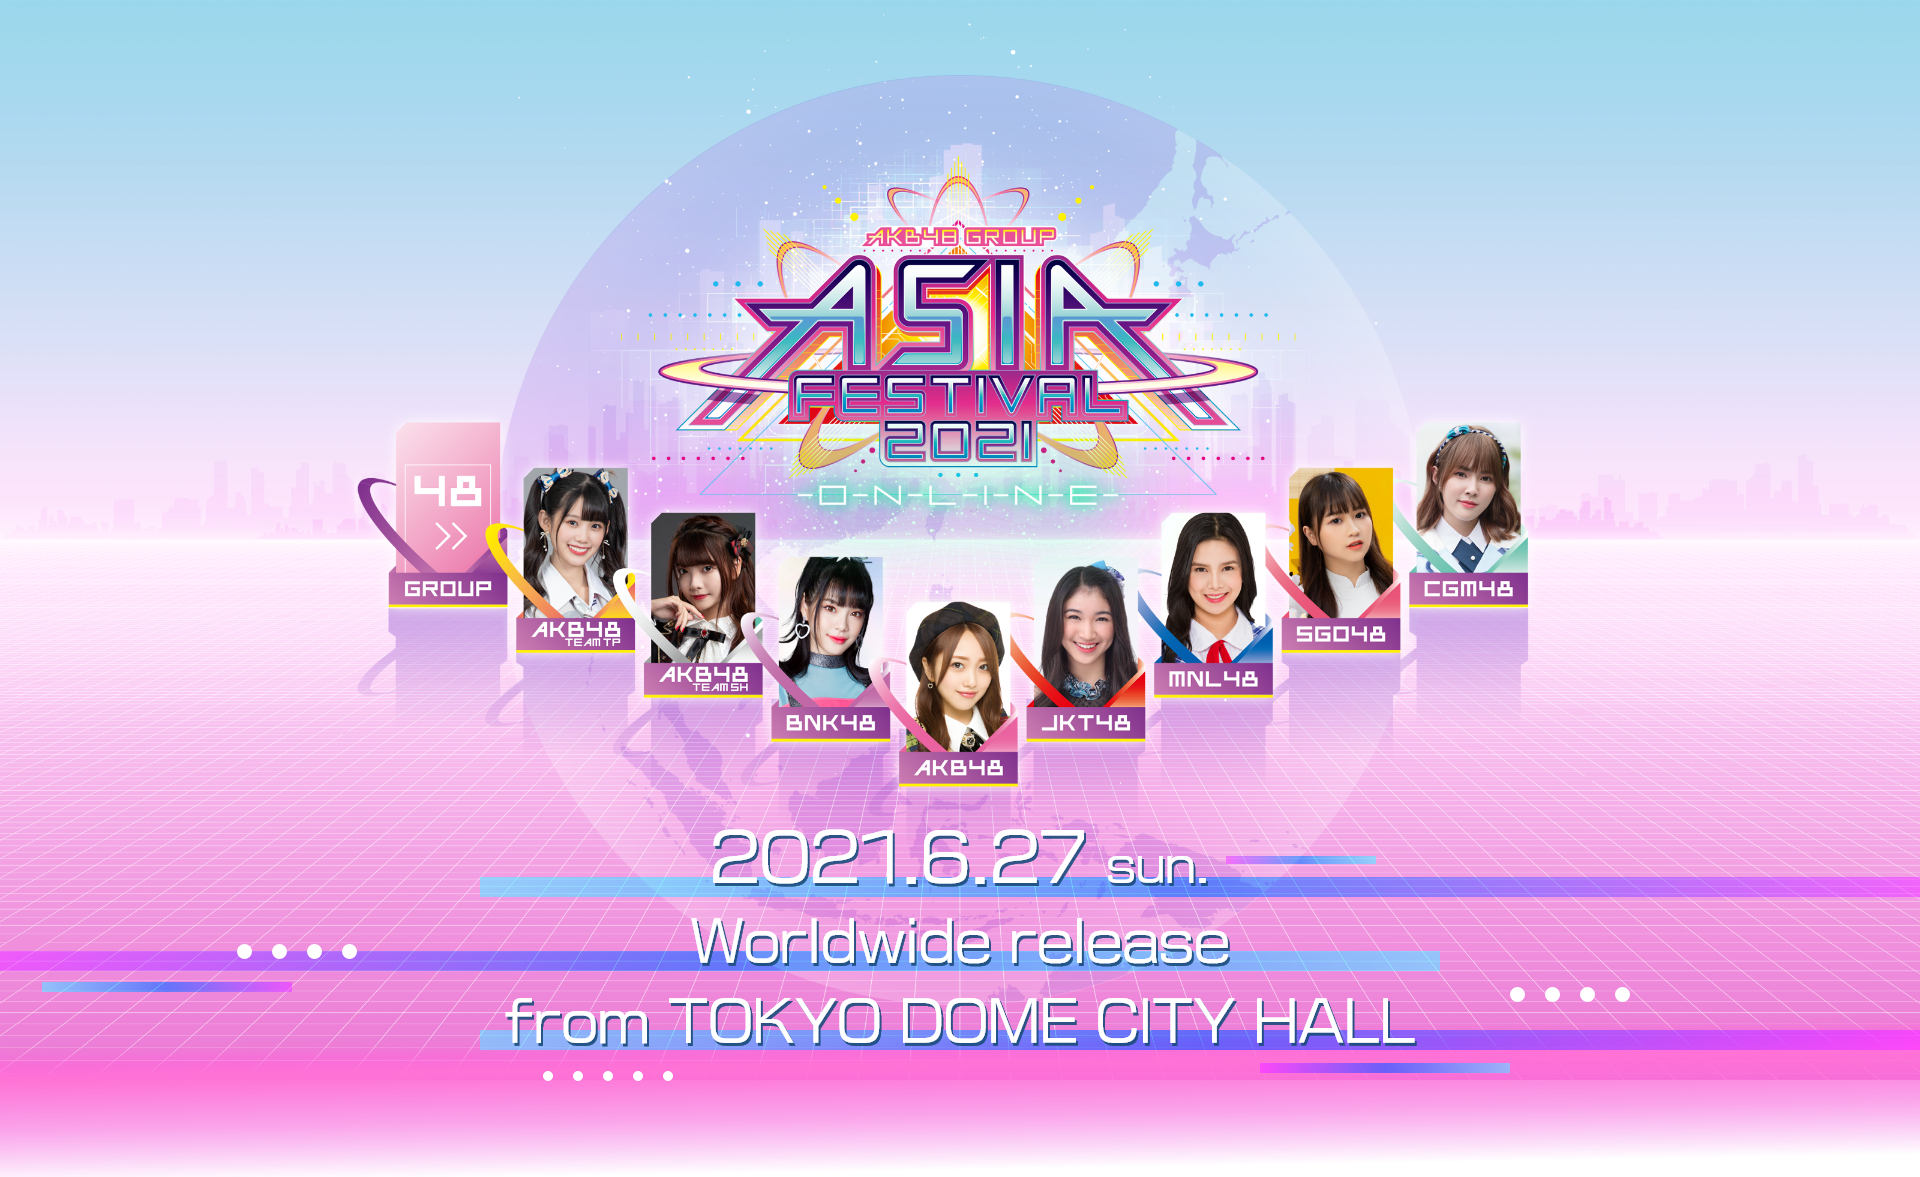 AKB48 Group Asia Festival 2021 ONLINE 2021.6.27(sun)Worldwide release from TOKYO DOME CITY HALL